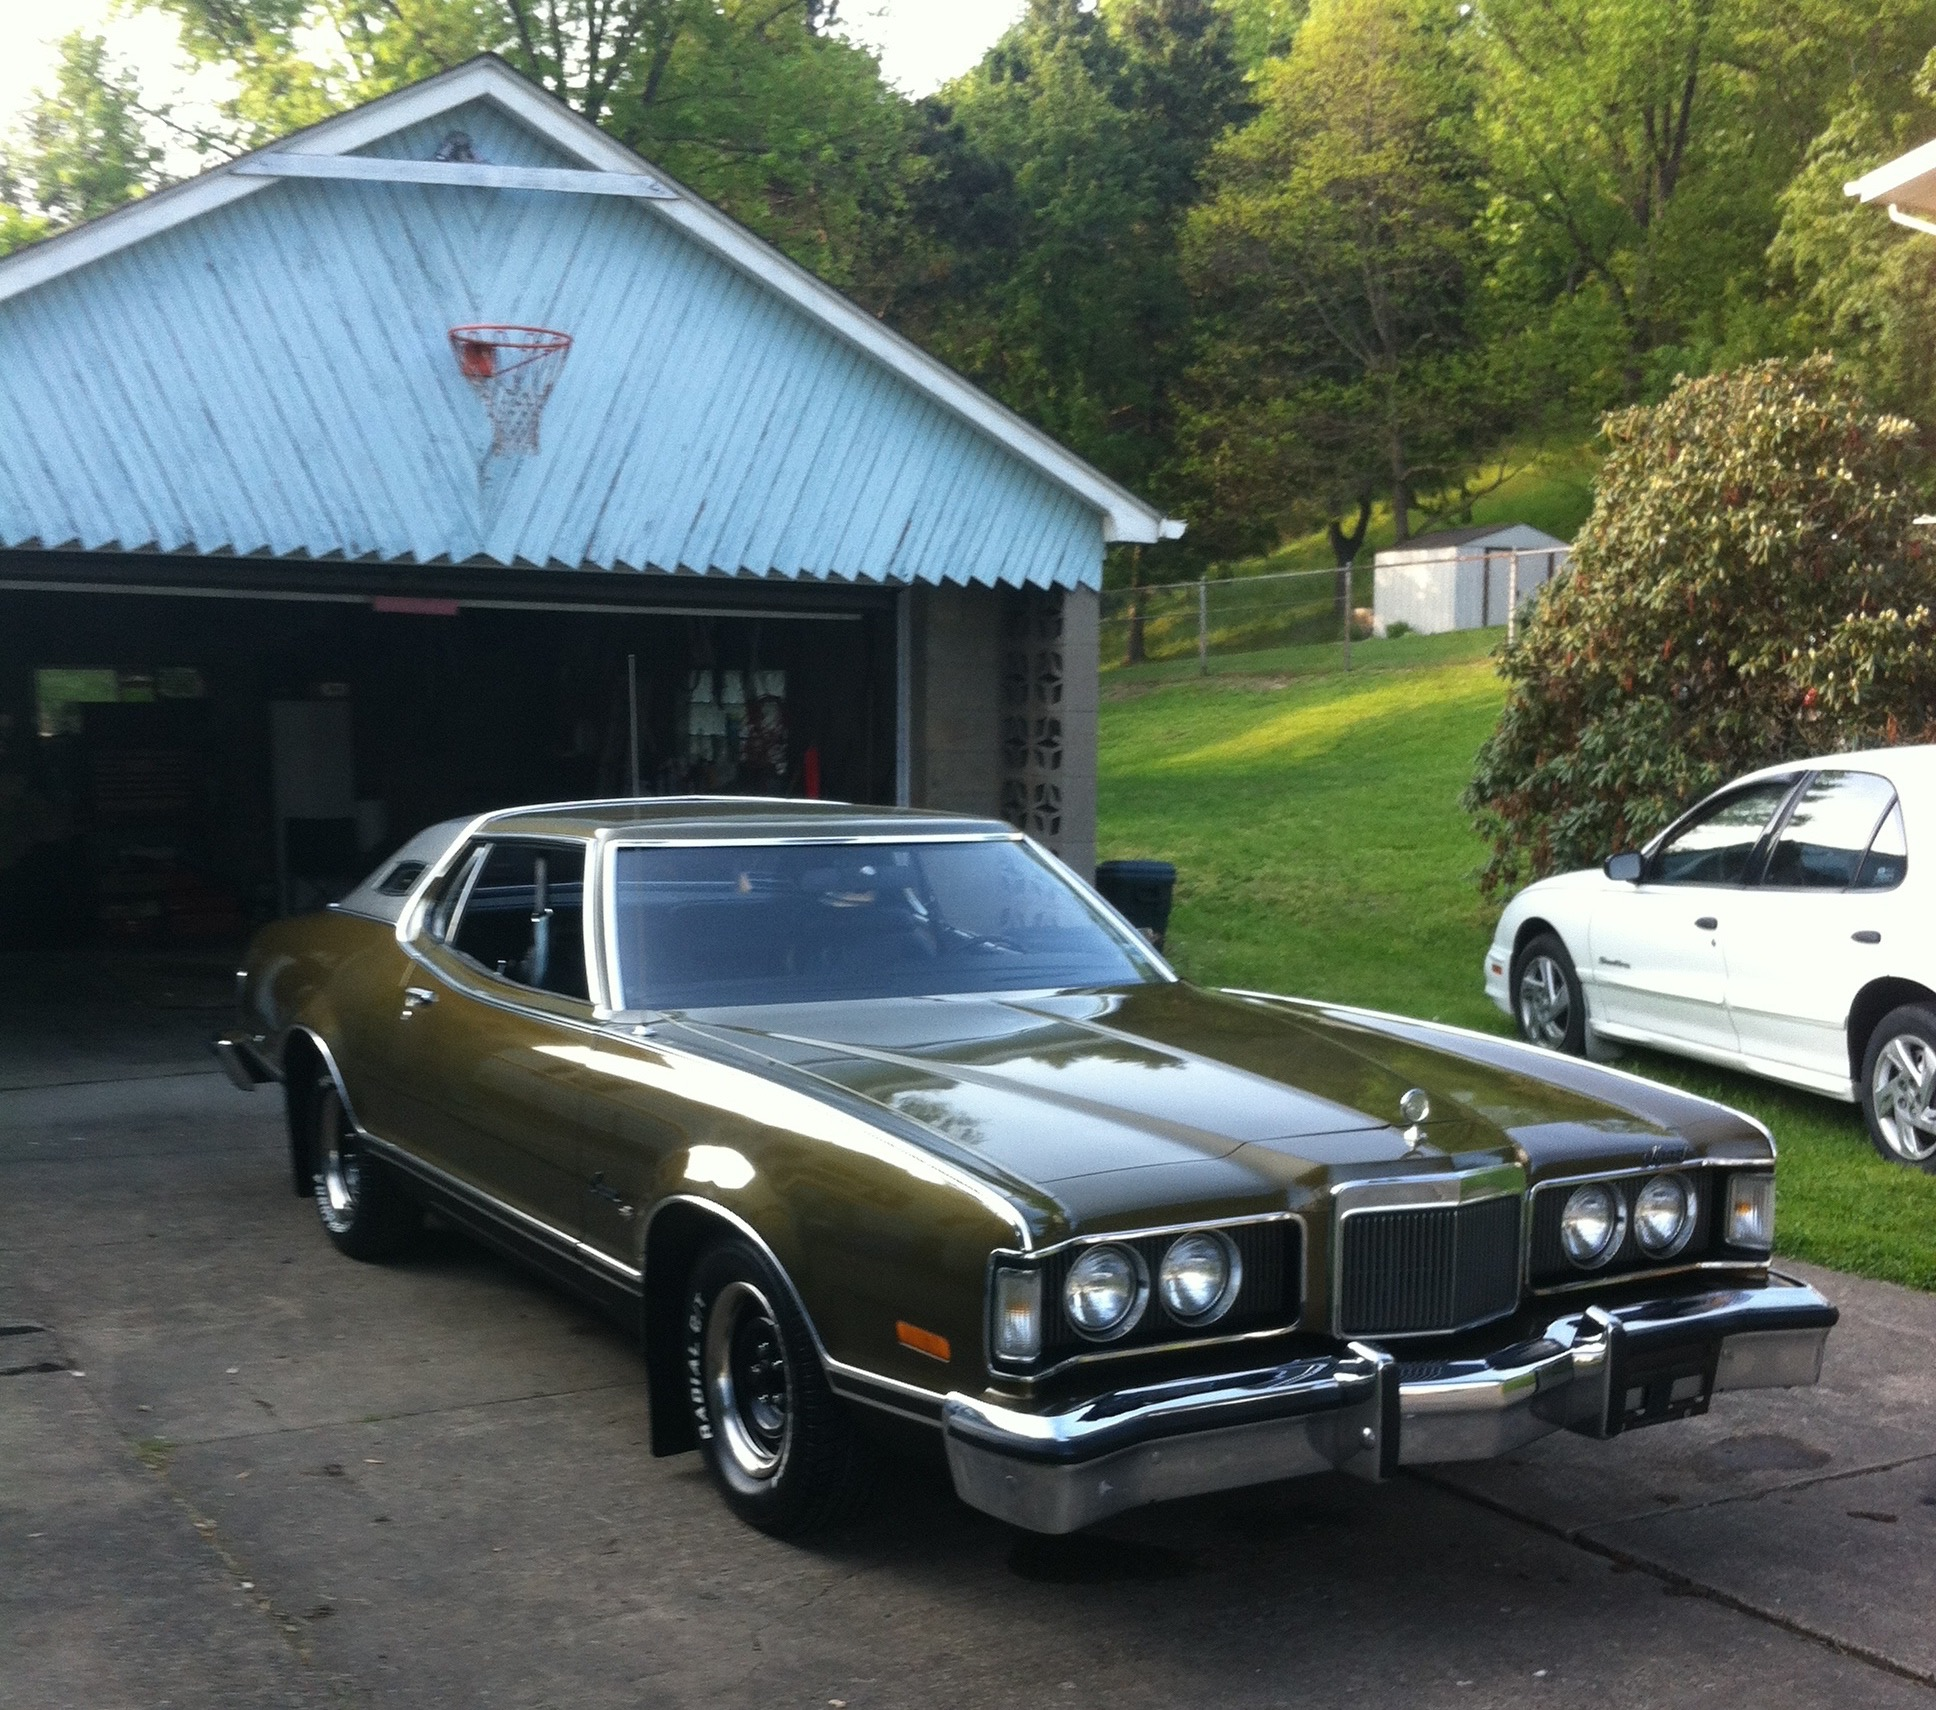 My Classic Car: Roger's 1974 Mercury Cougar XR7